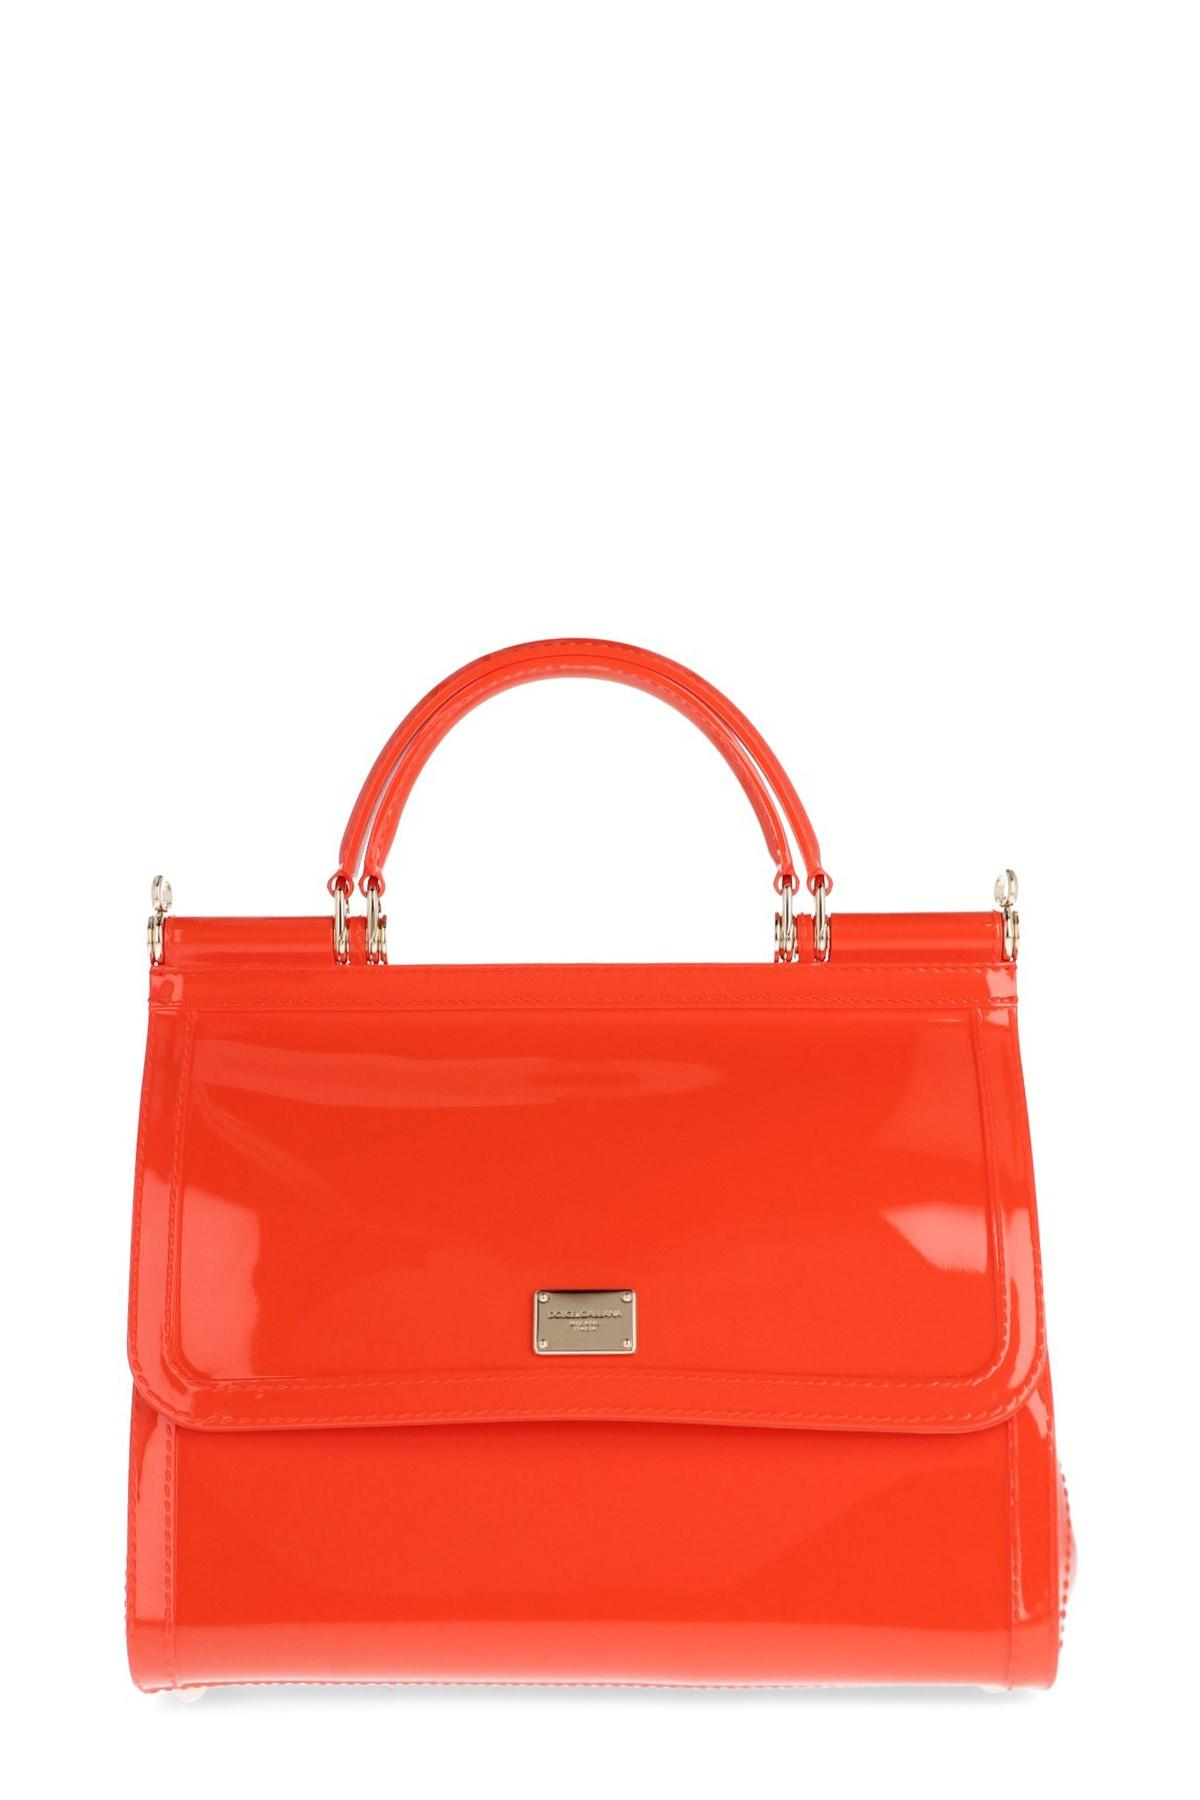 d8d200be81a dolce-gabbana-Orange-Borsa-A-Mano-sicily.jpeg